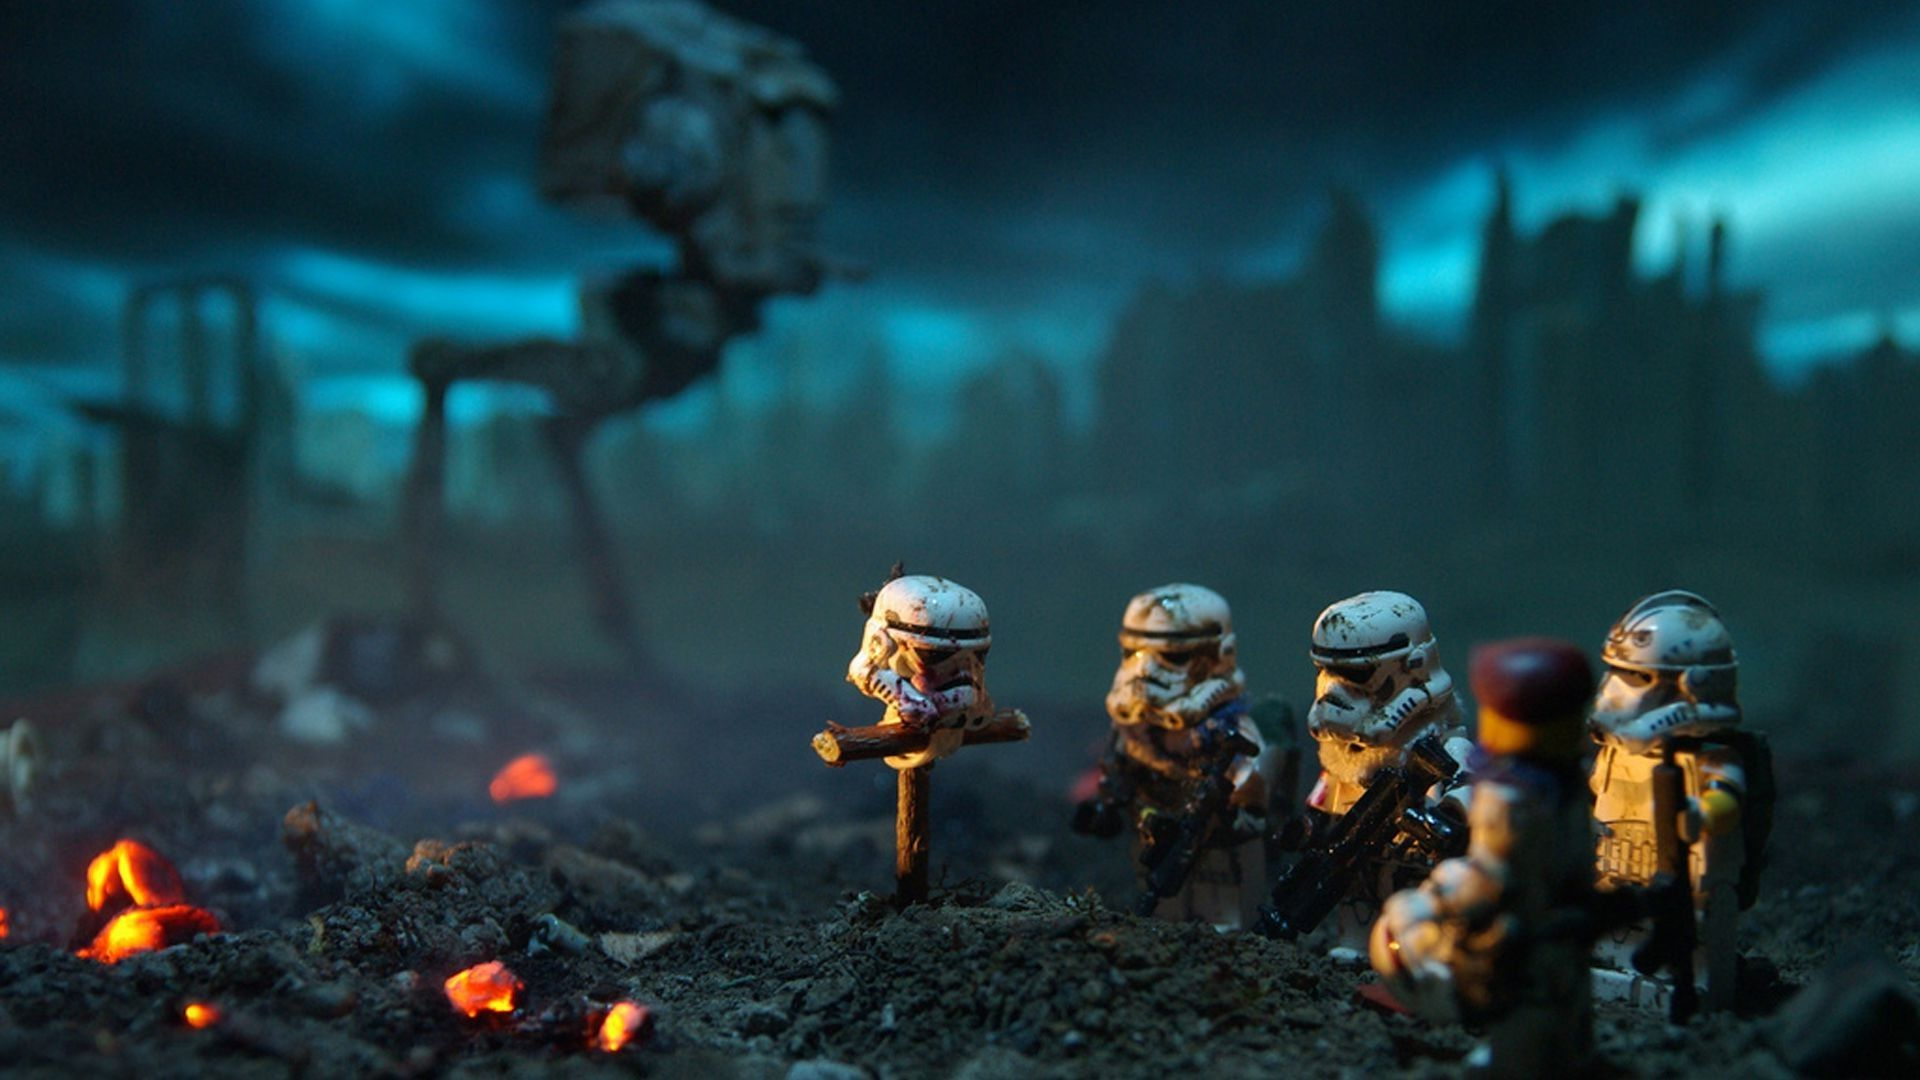 Lego Star Wars Wallpapers Background in 2019 Star wars